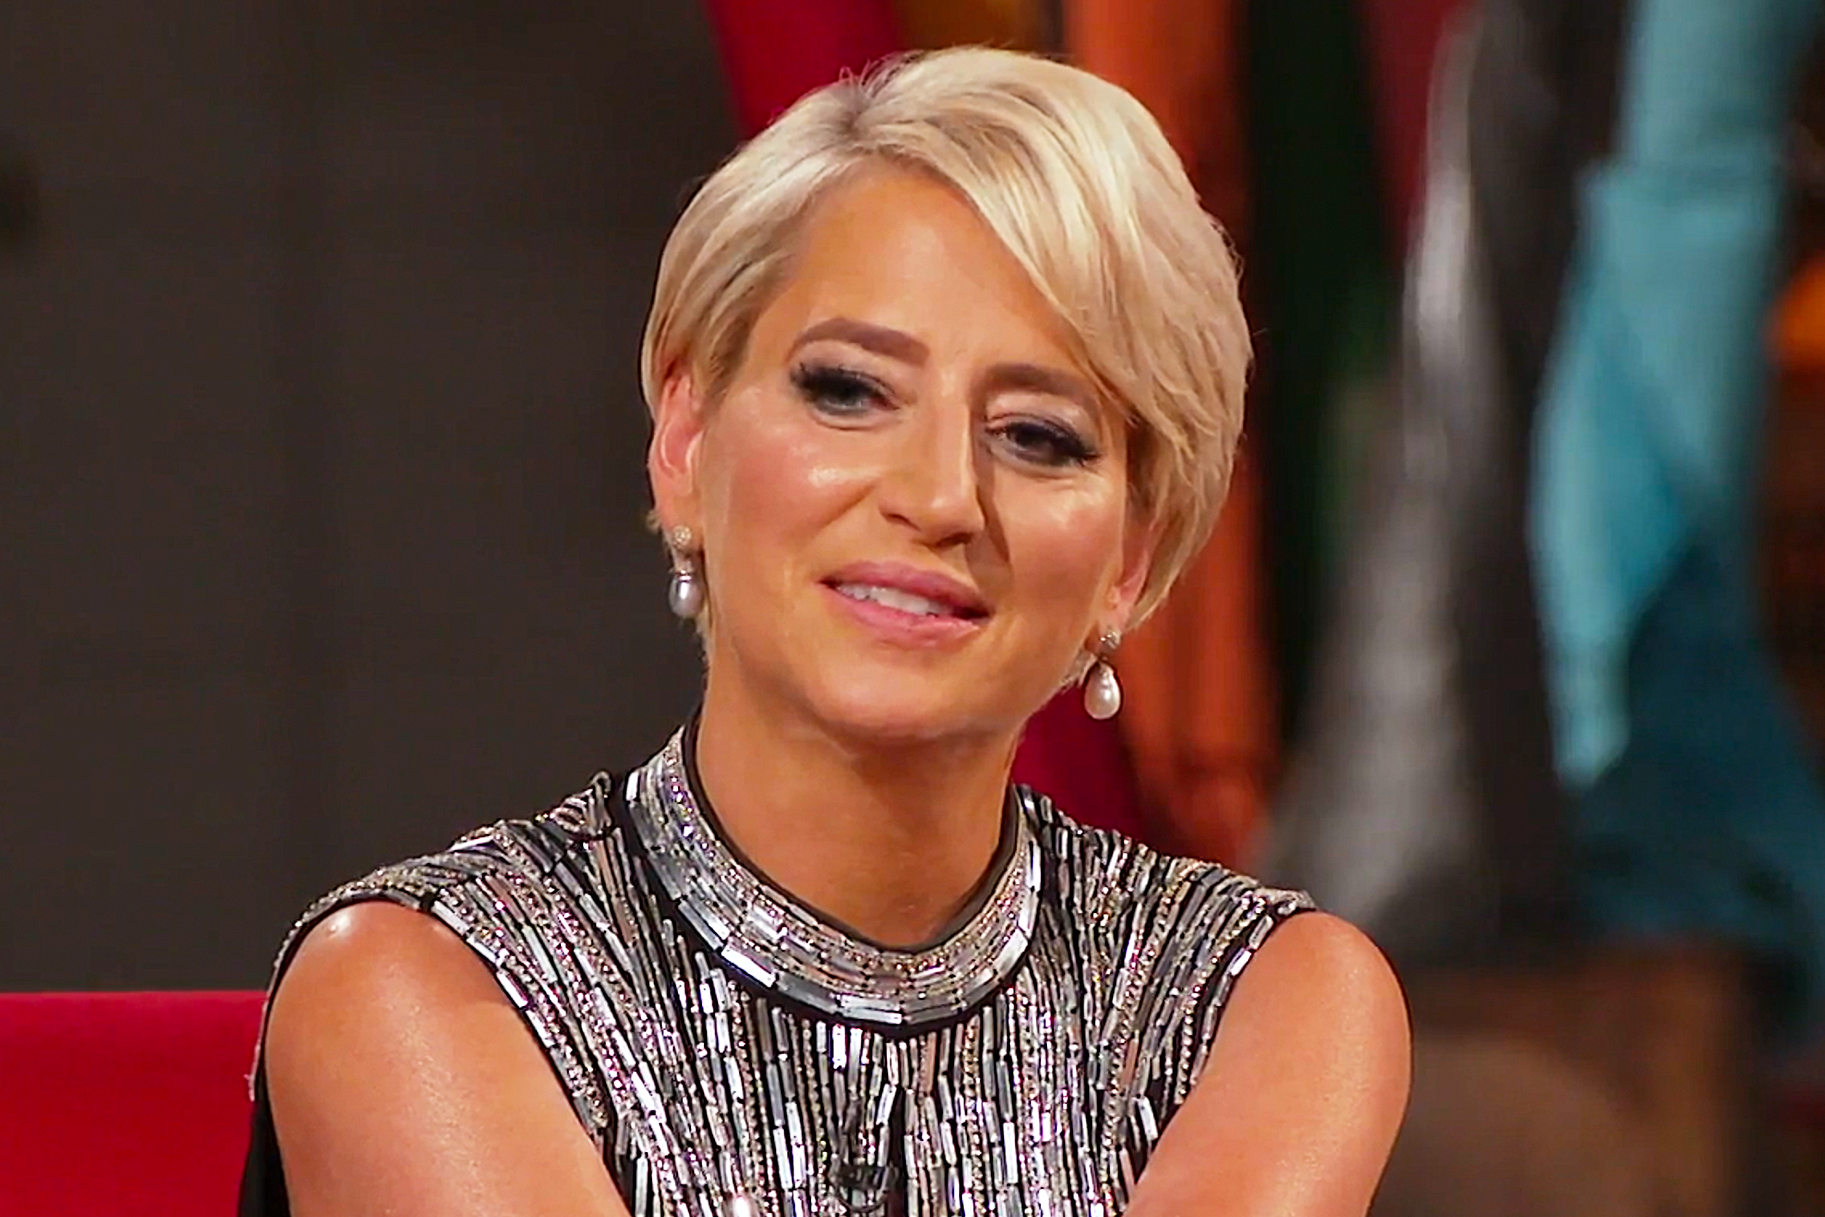 Dorinda Medley Reunion Beauty Look